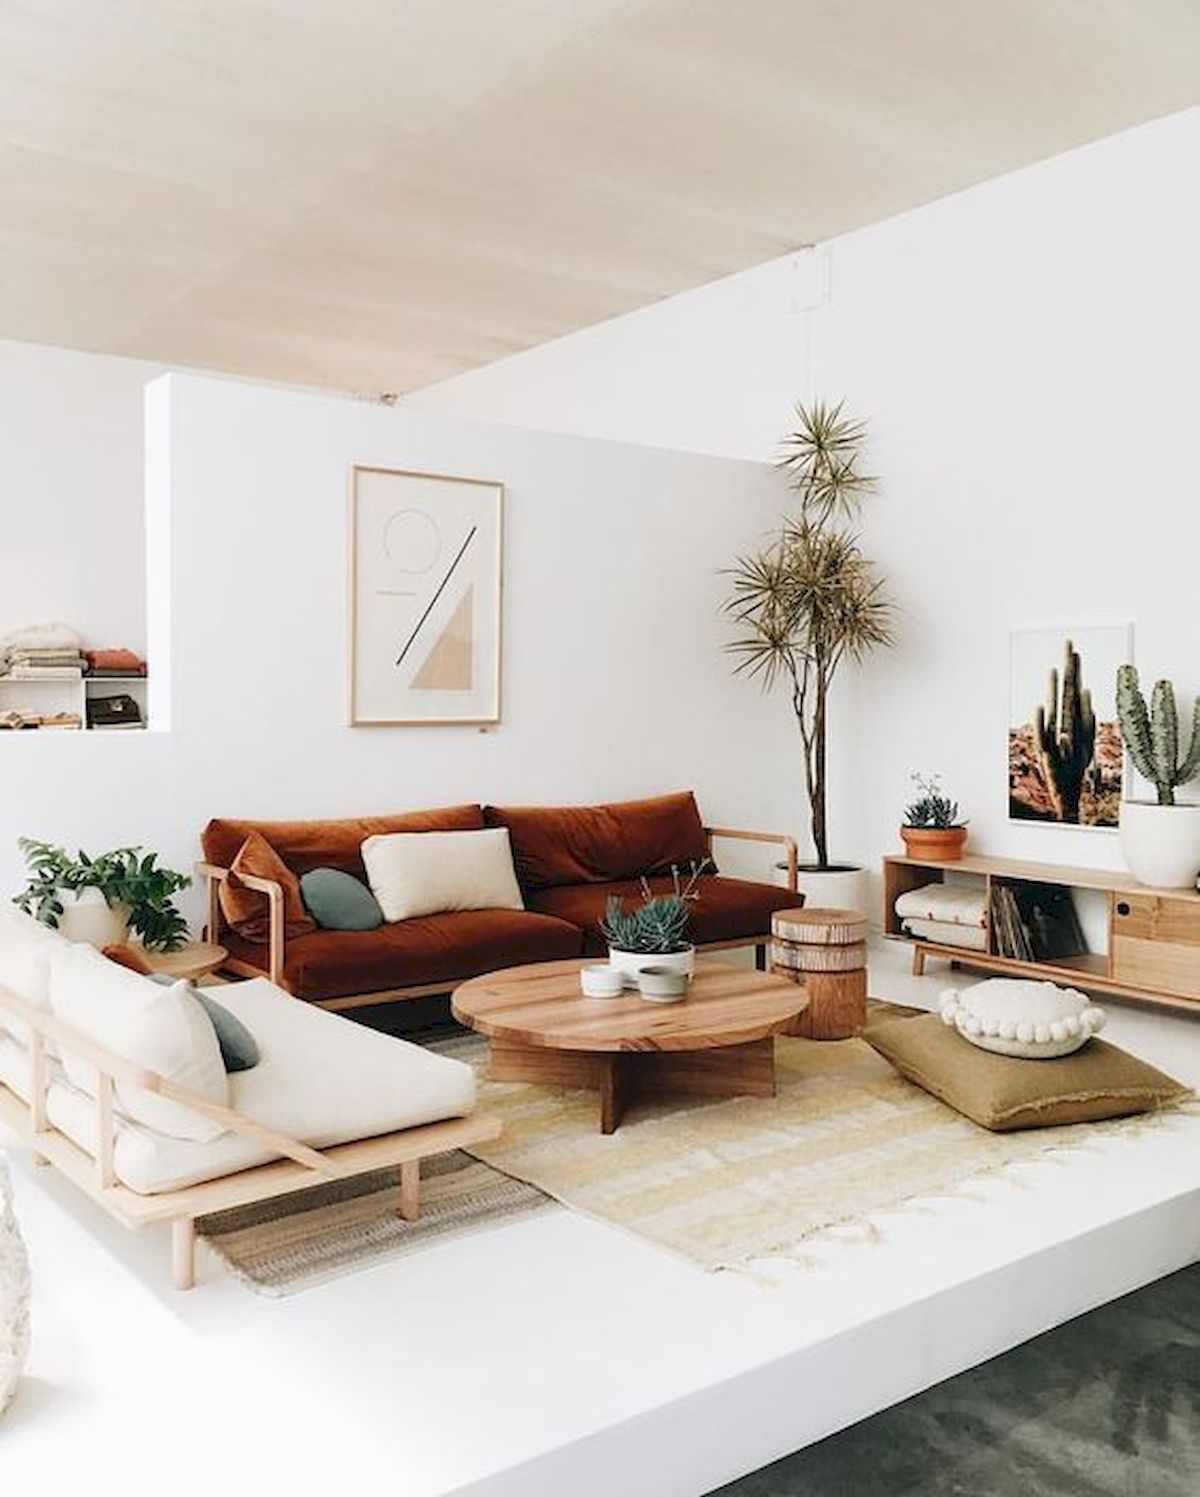 scandinavian living room scandinavian living room What's Hot On Pinterest Scandinavian Living Room Décor! Whats Hot On Pinterest Scandinavian Living Room D  cor2